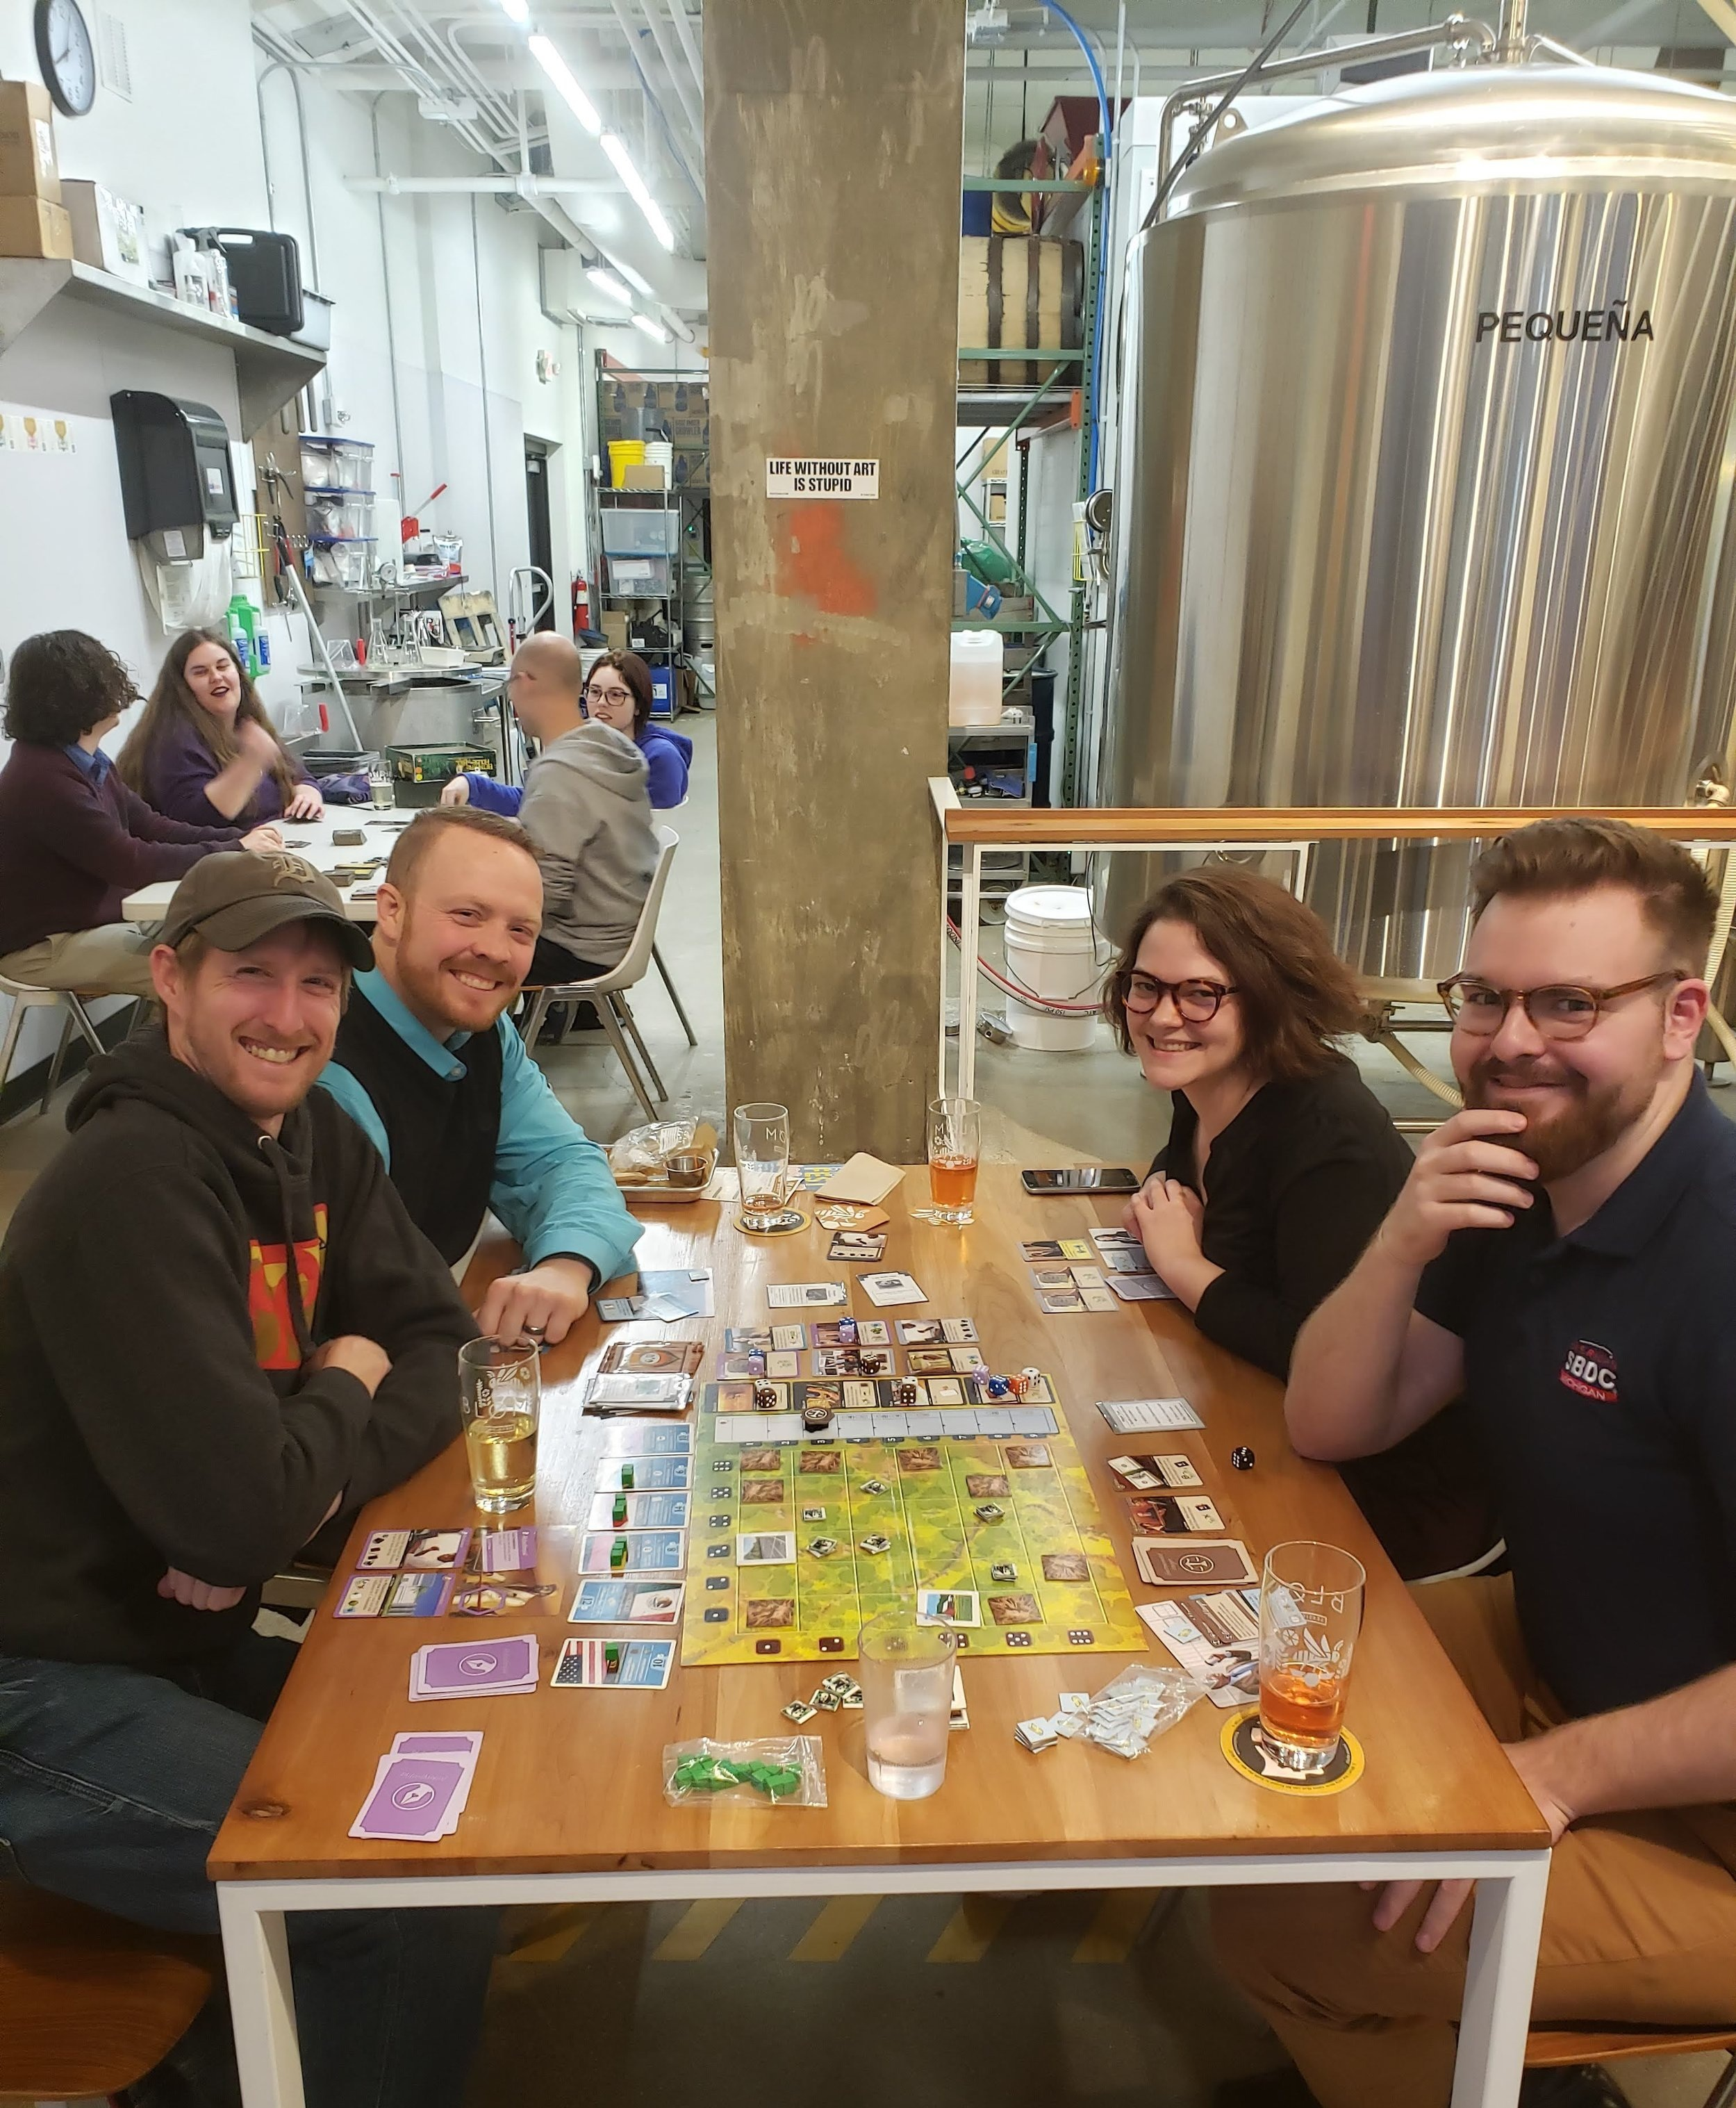 Courtesy photo from Spencer Field after meeting over mead at  Blom Meadworks ' public board game night on Thursdays.